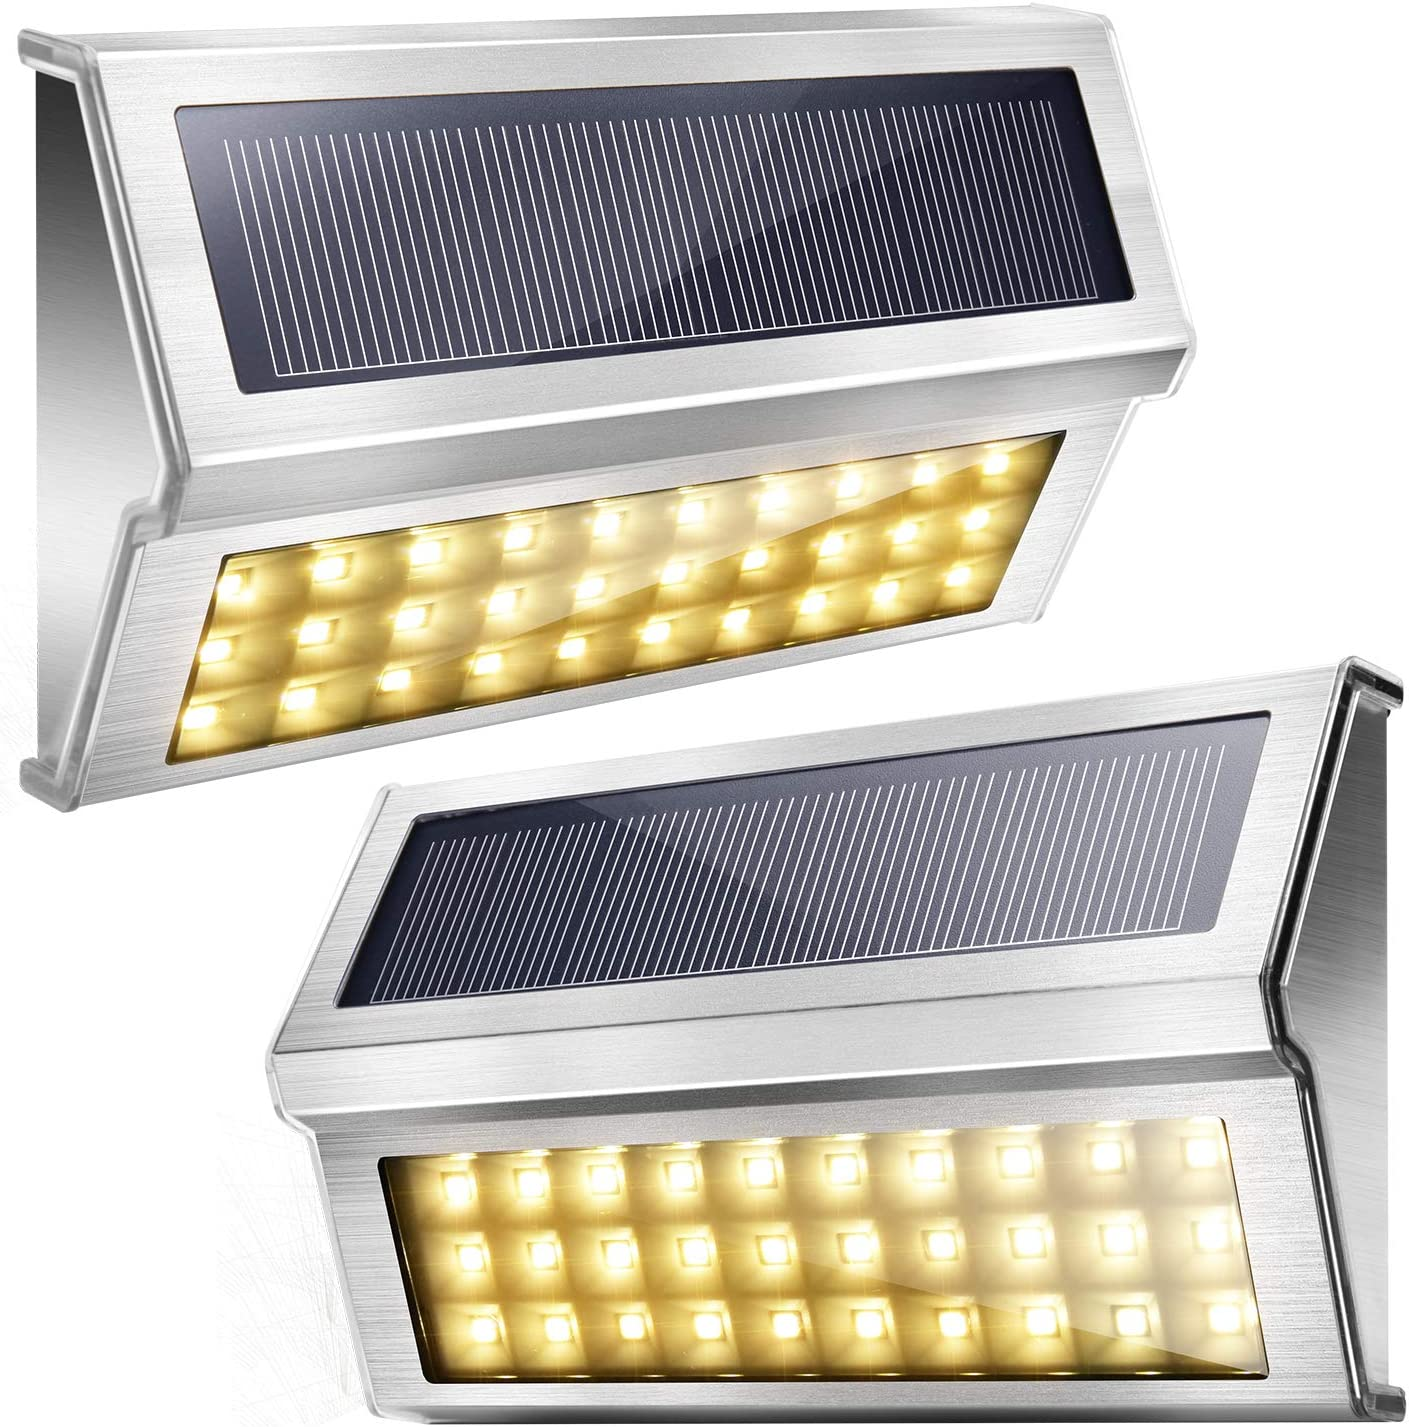 Upgraded 30 LED Bright Cool White Solar Step Lights JACKYLED 10-Pack Stainless Steel Solar Stair Lights Outdoor Waterproof Wireless Warning Security Lighting for Deck Dock Fence Porch Yard